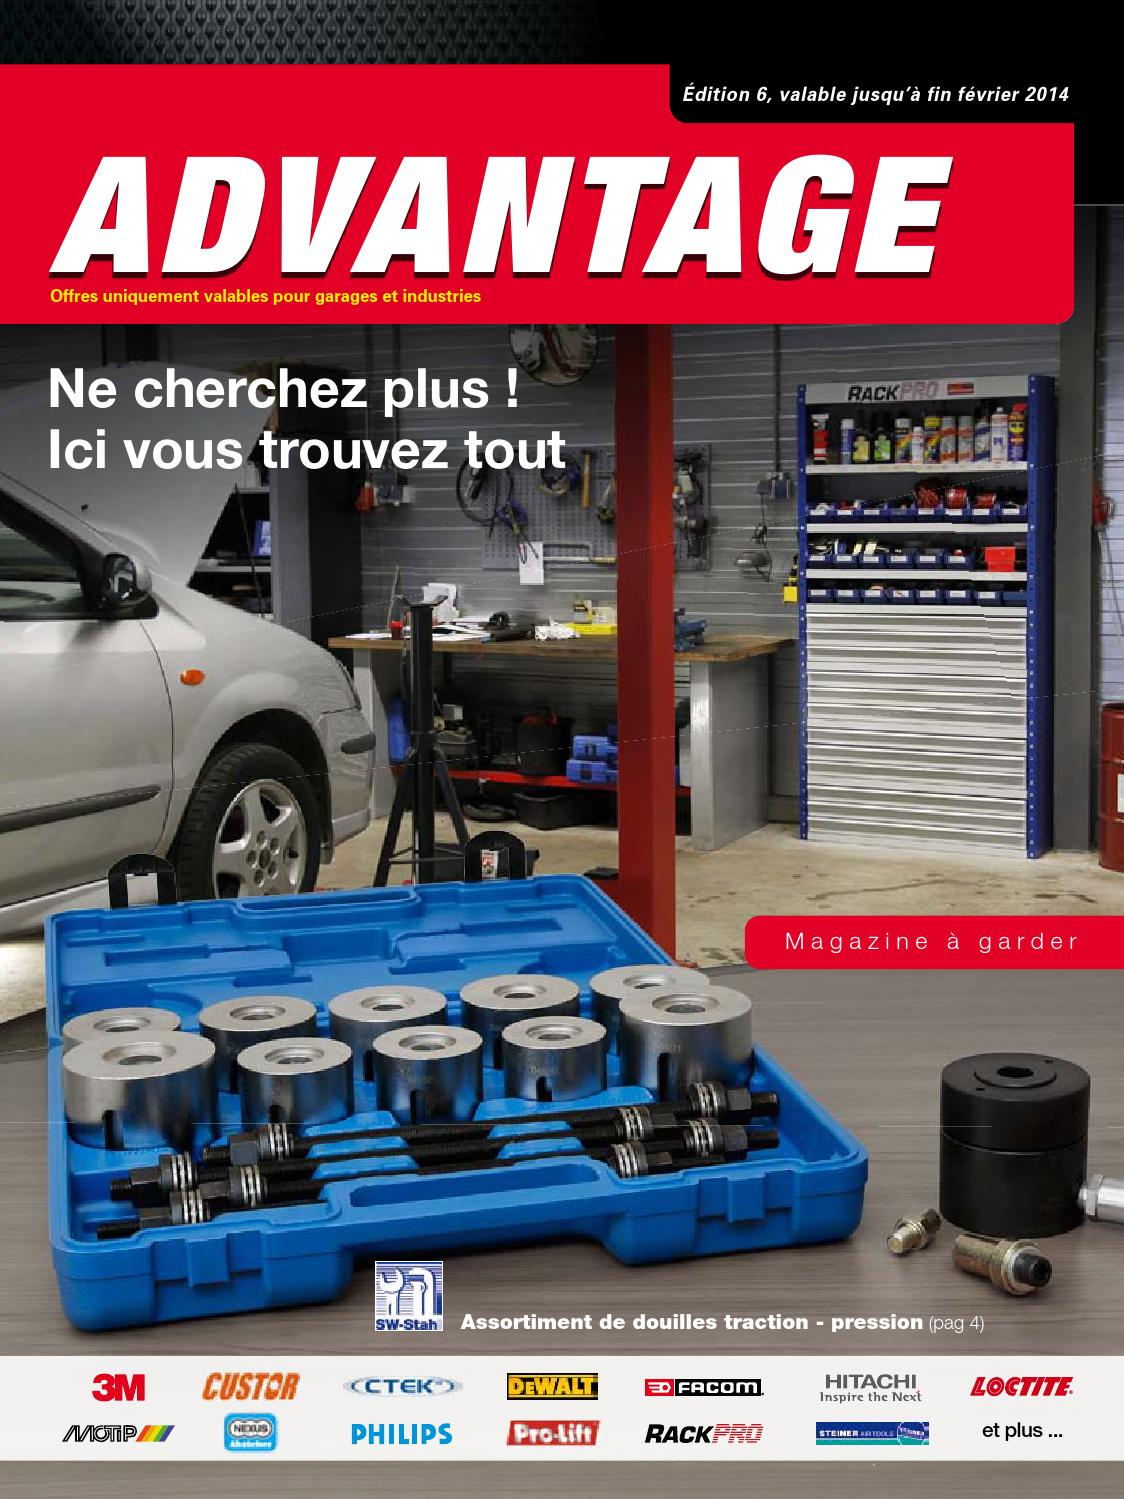 Advantage 02 2013 Wls By Ad Benelux Issuu